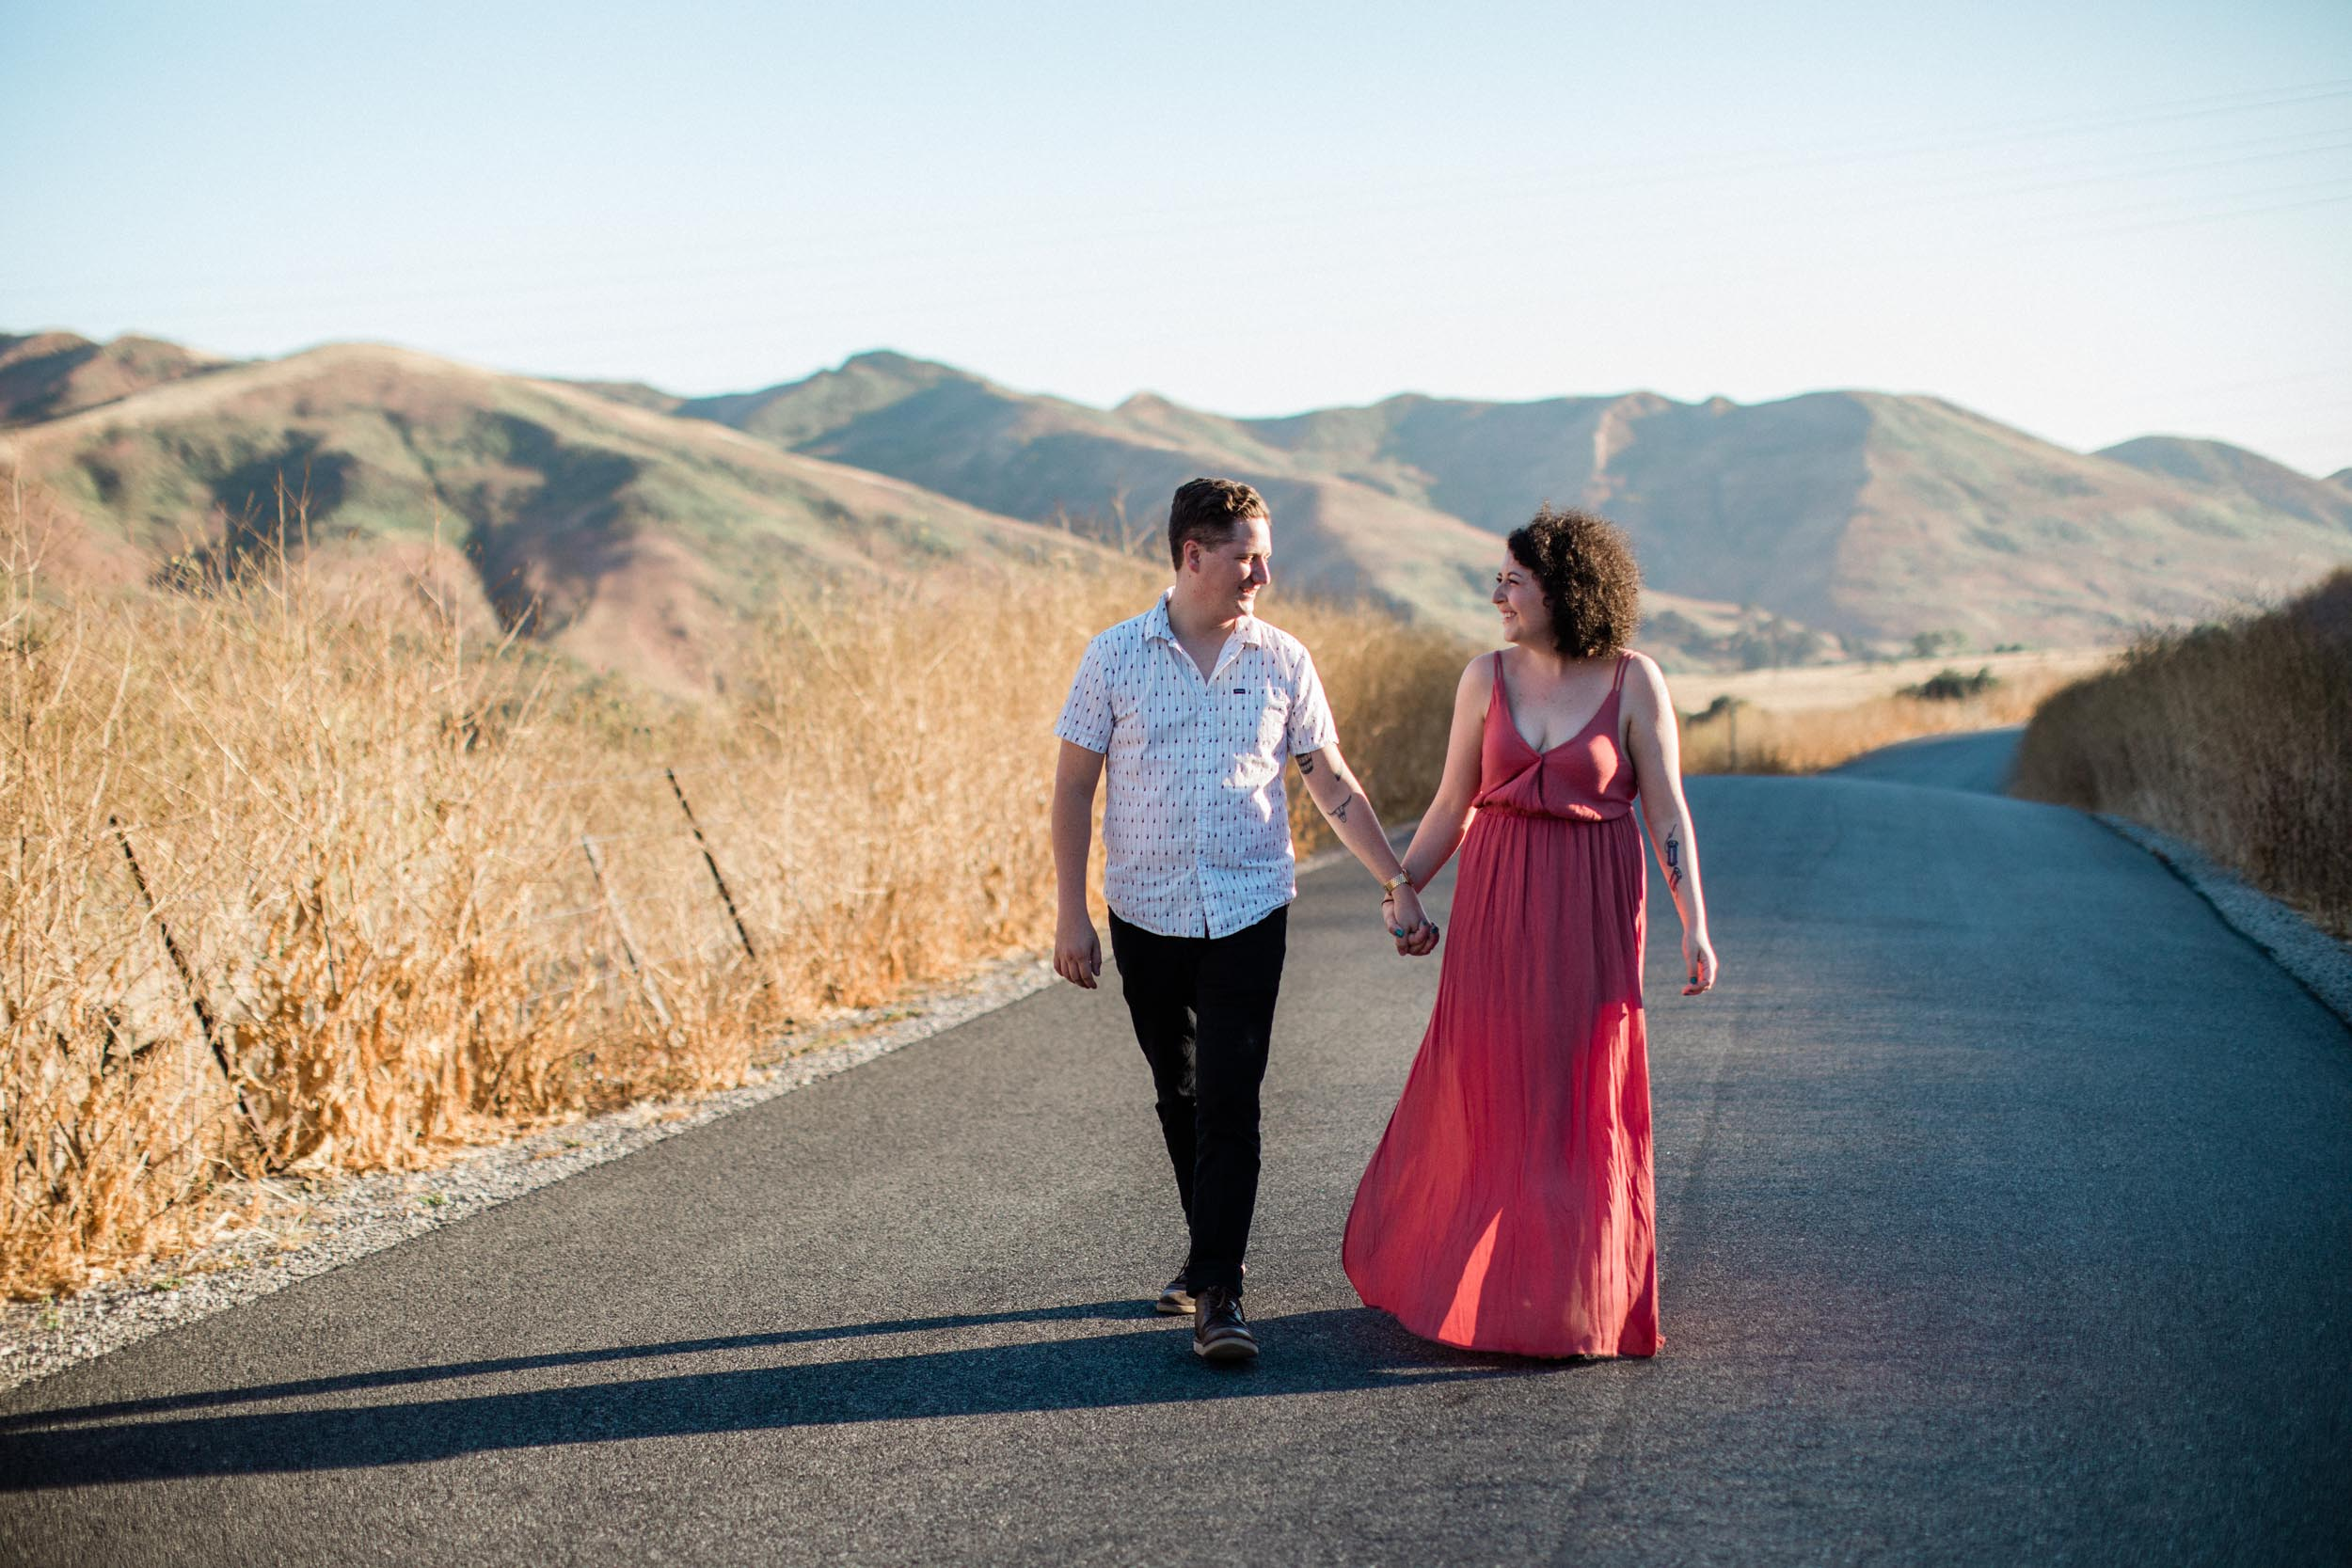 BKM-Photography-Ventura-Southern-California-Engagement-Wedding-0018.jpg